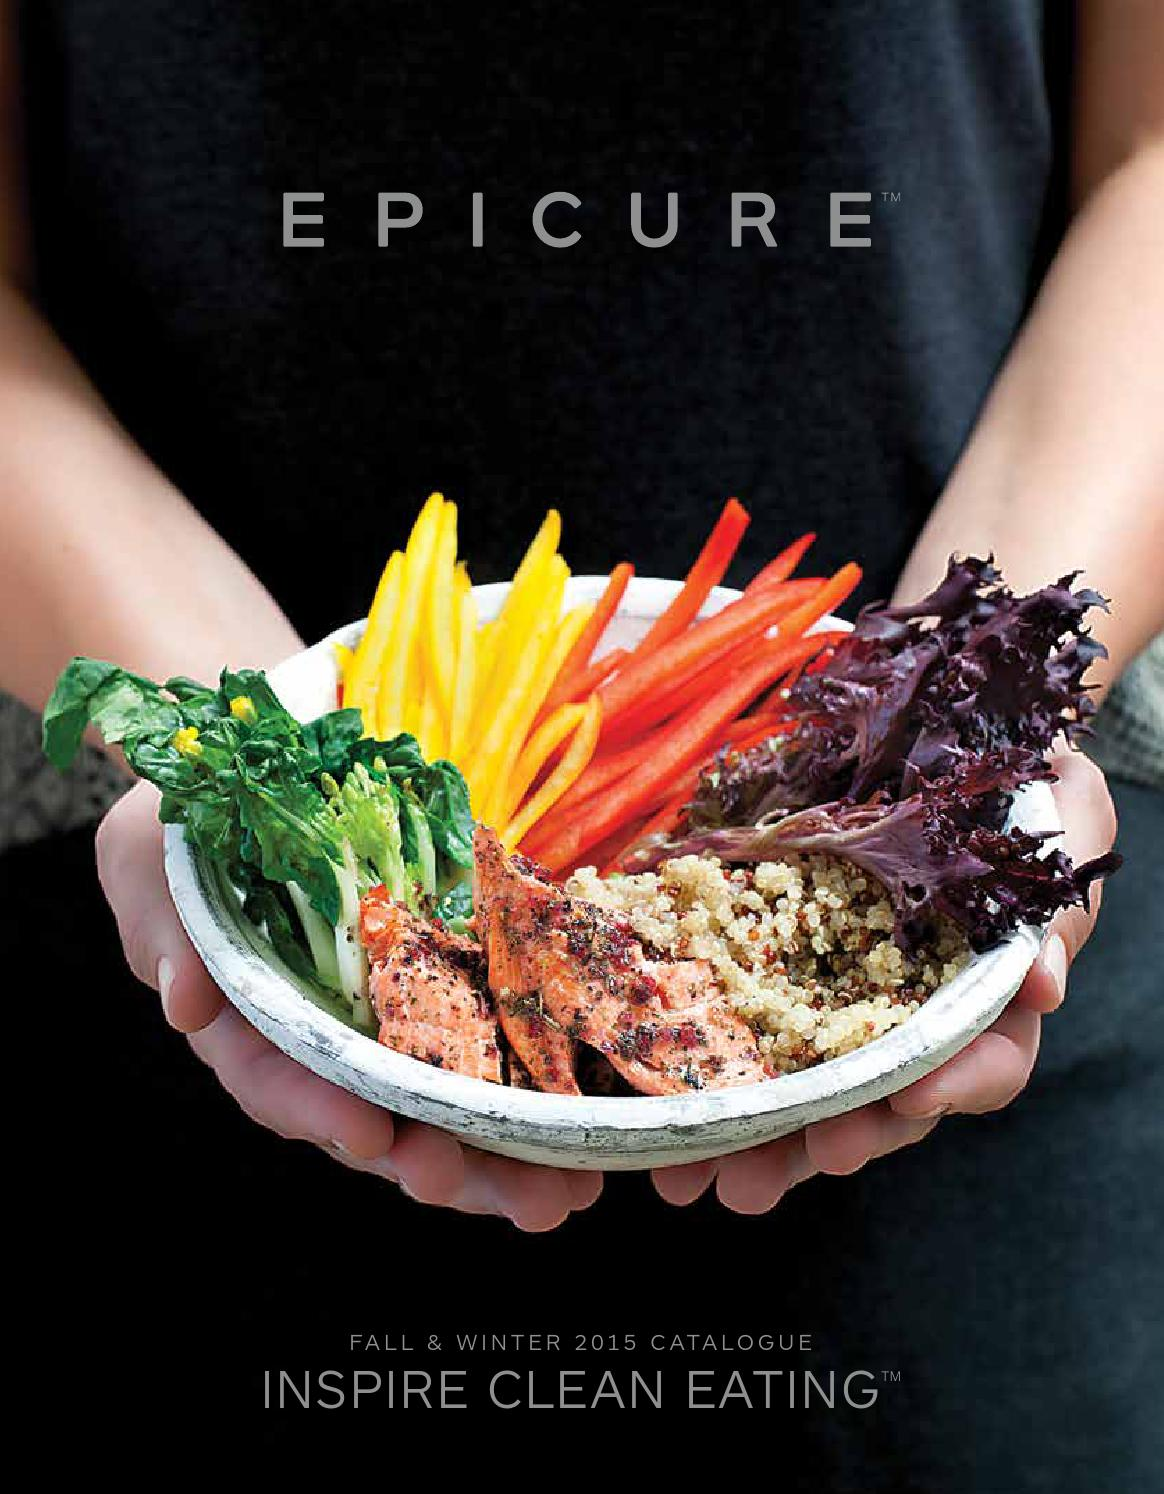 Fashion 2017 fall - Epicure Fall Winter 2015 Catalogue By Epicure Issuu